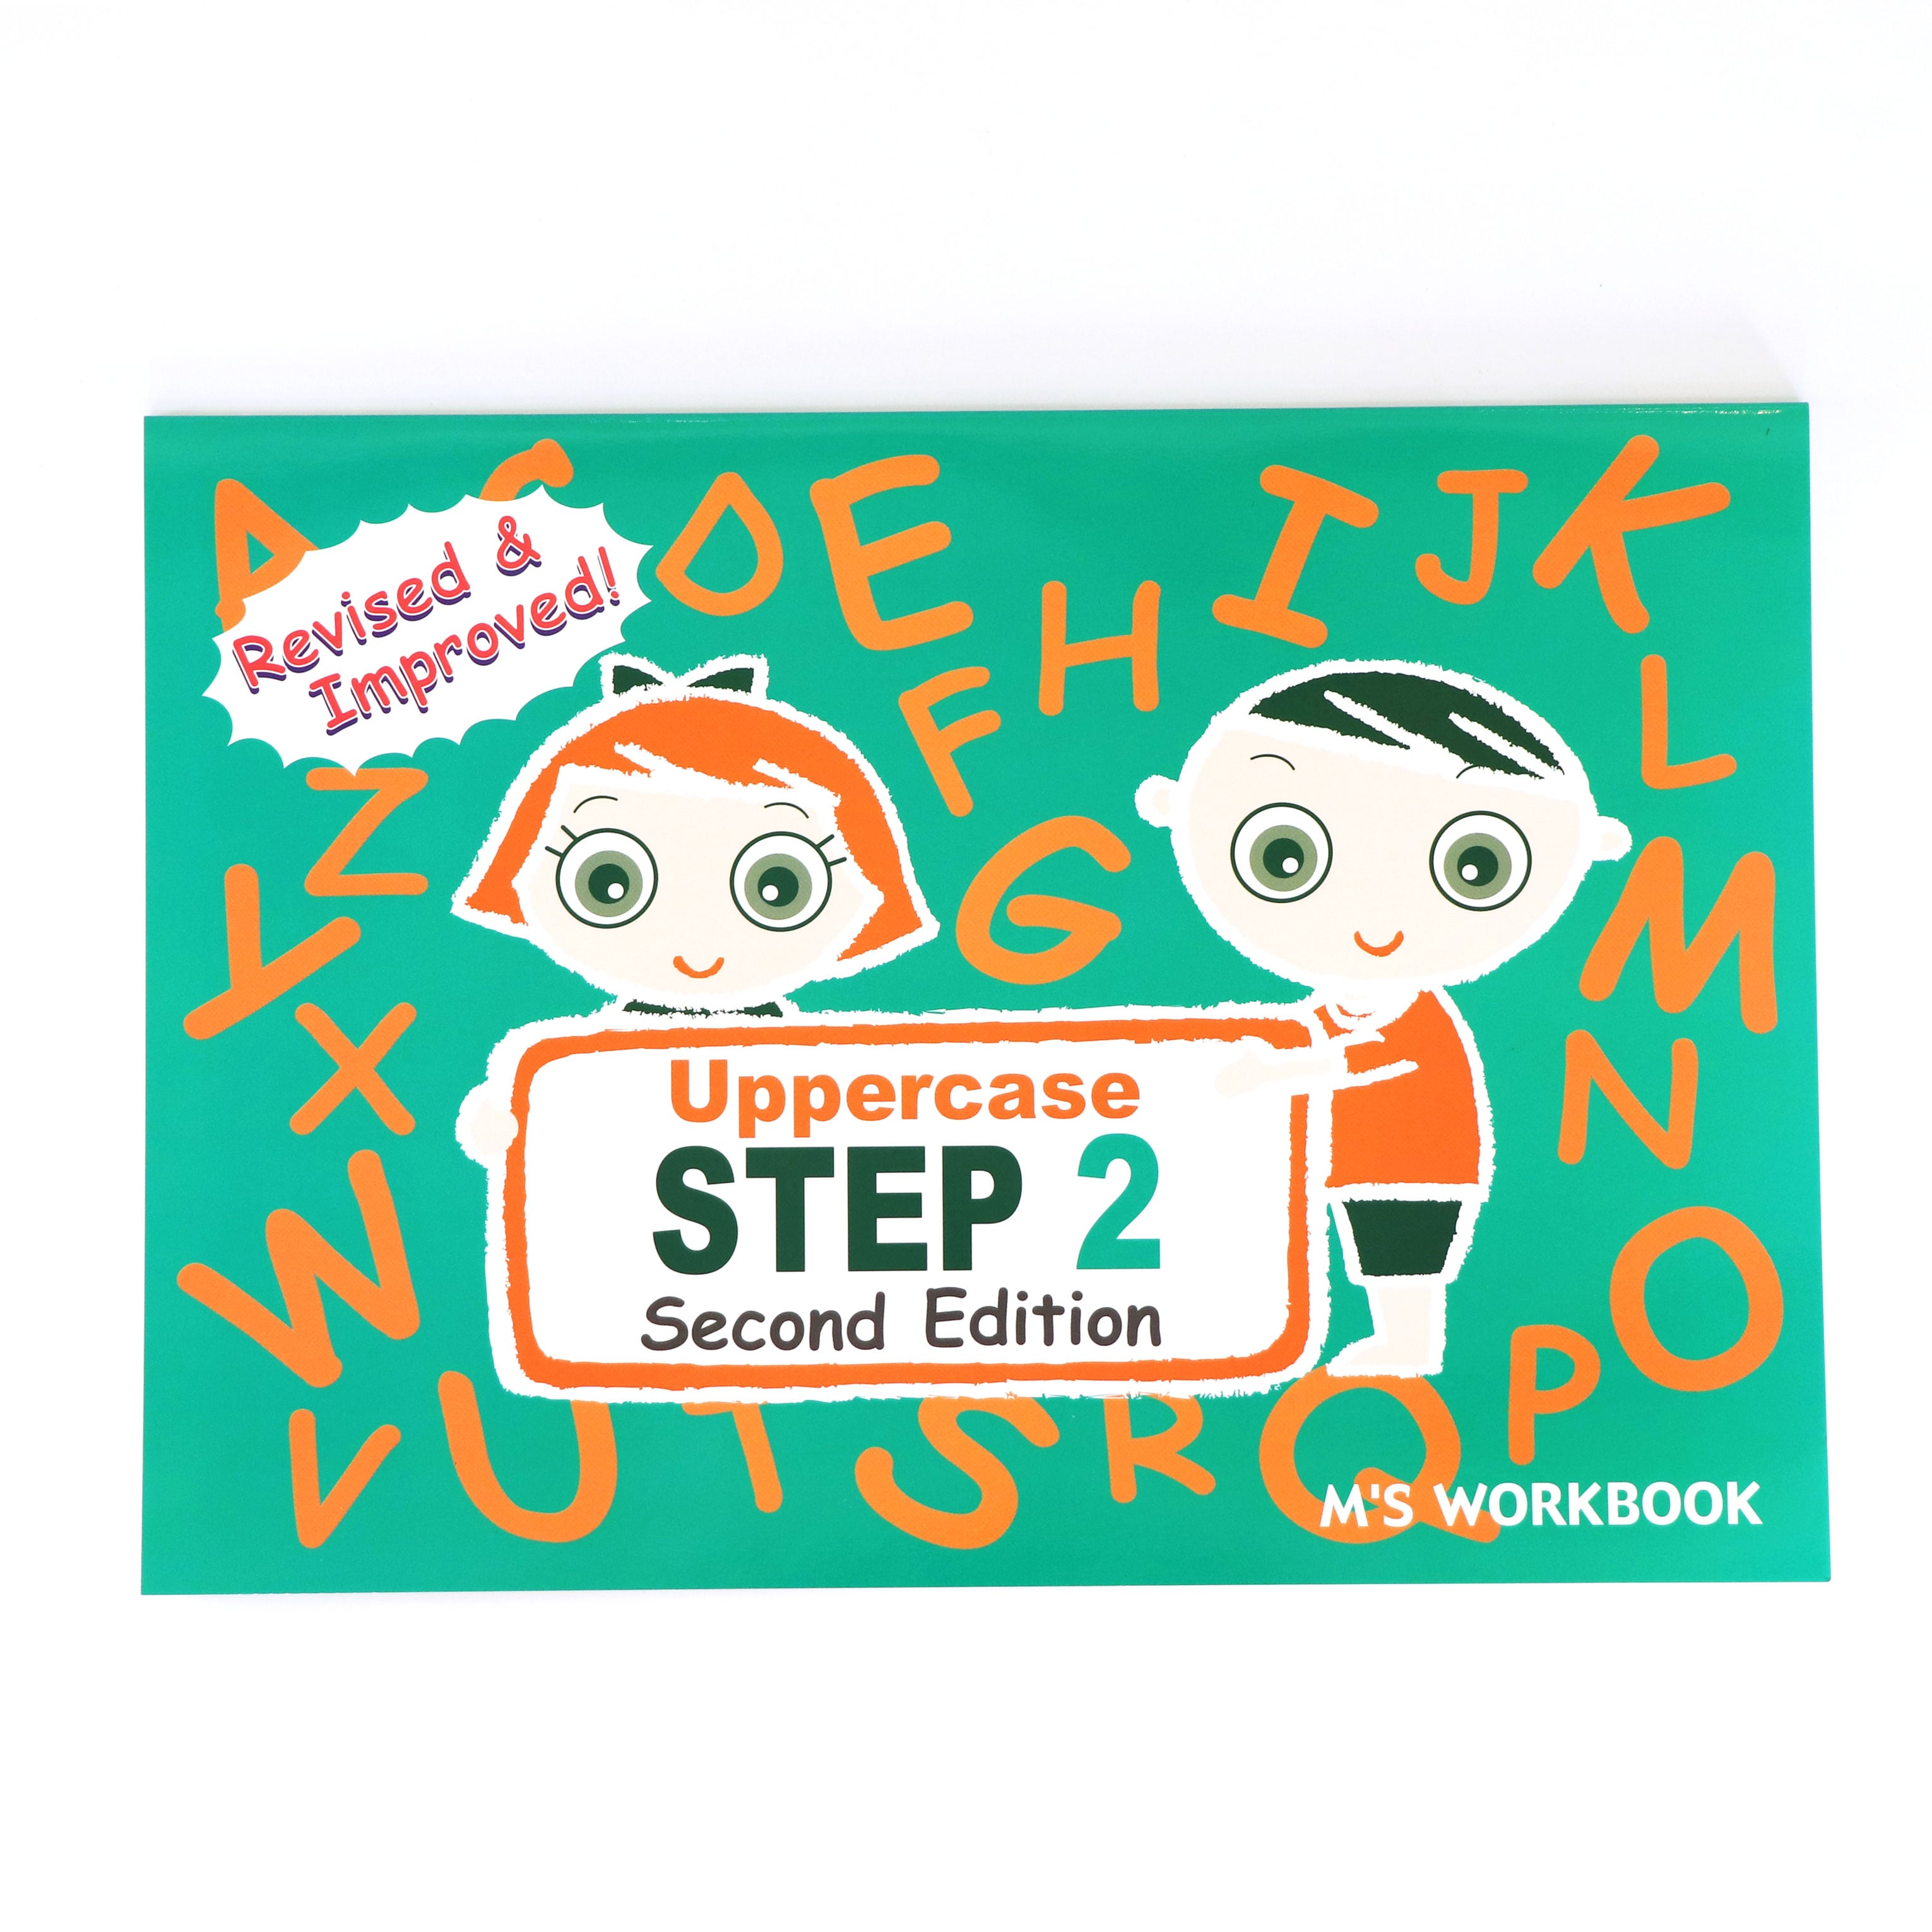 【STEP 2(Upper case) Second Edition】